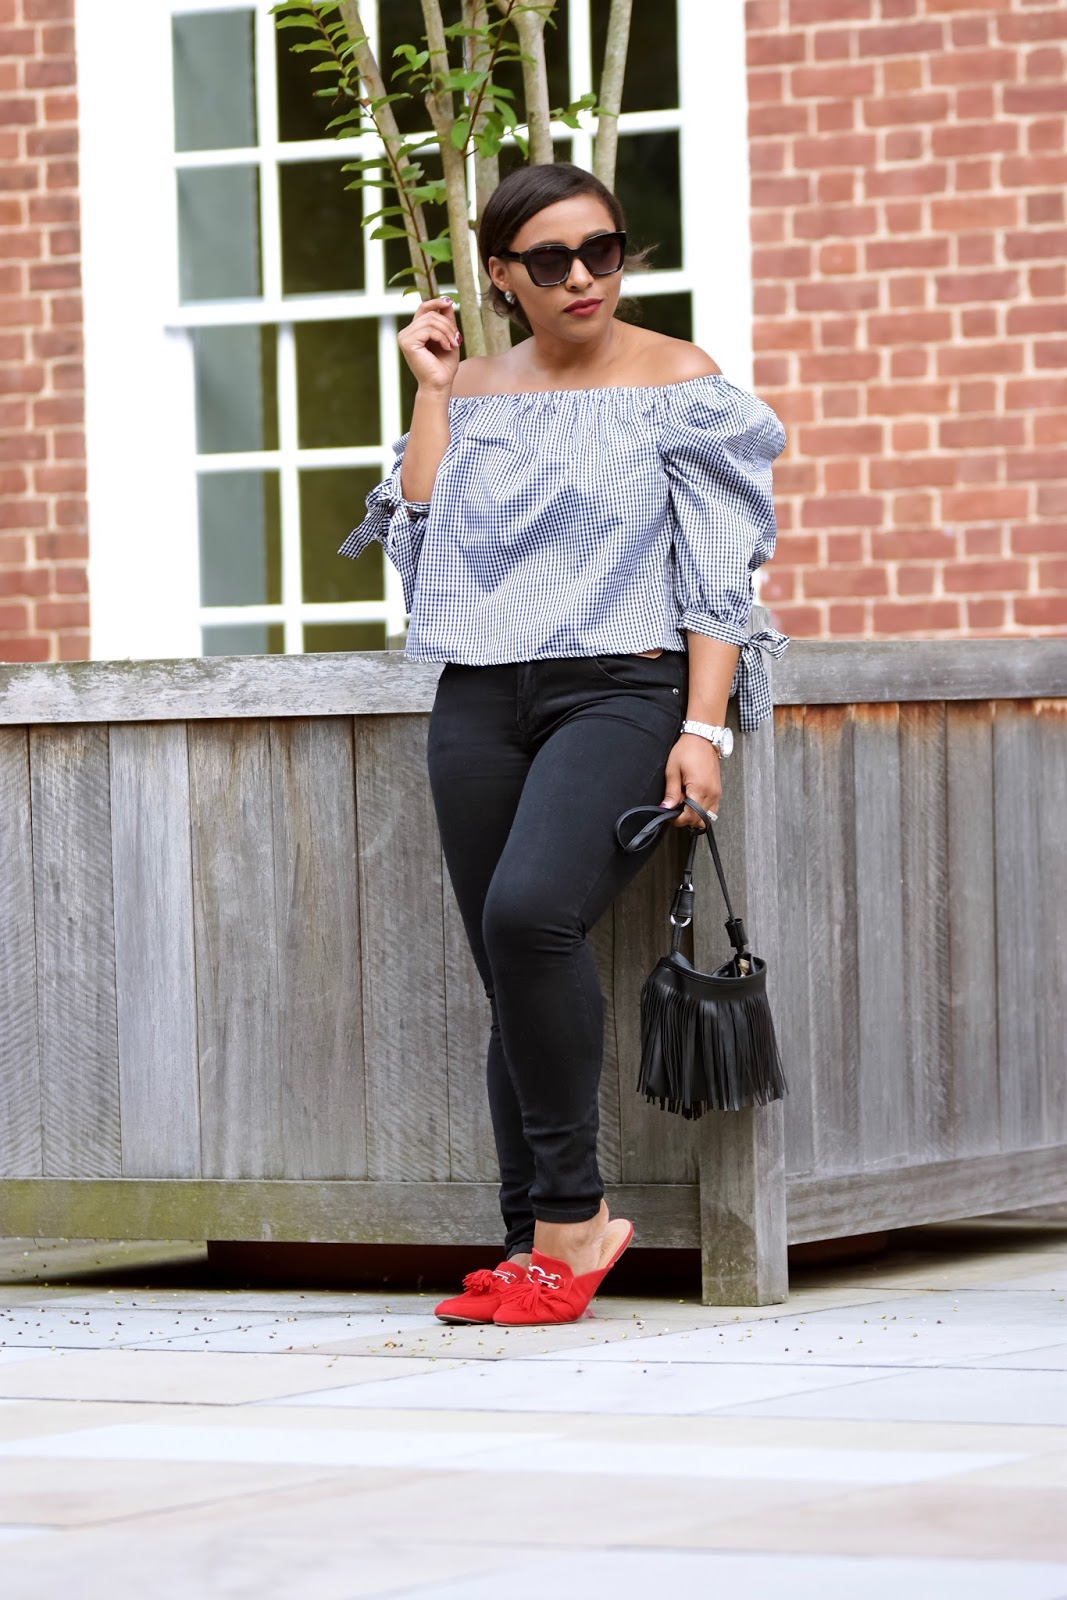 Ruffle top, off the shoulder trend, rainbowbabes, casual look, off the shoulder tops, slip on shoes